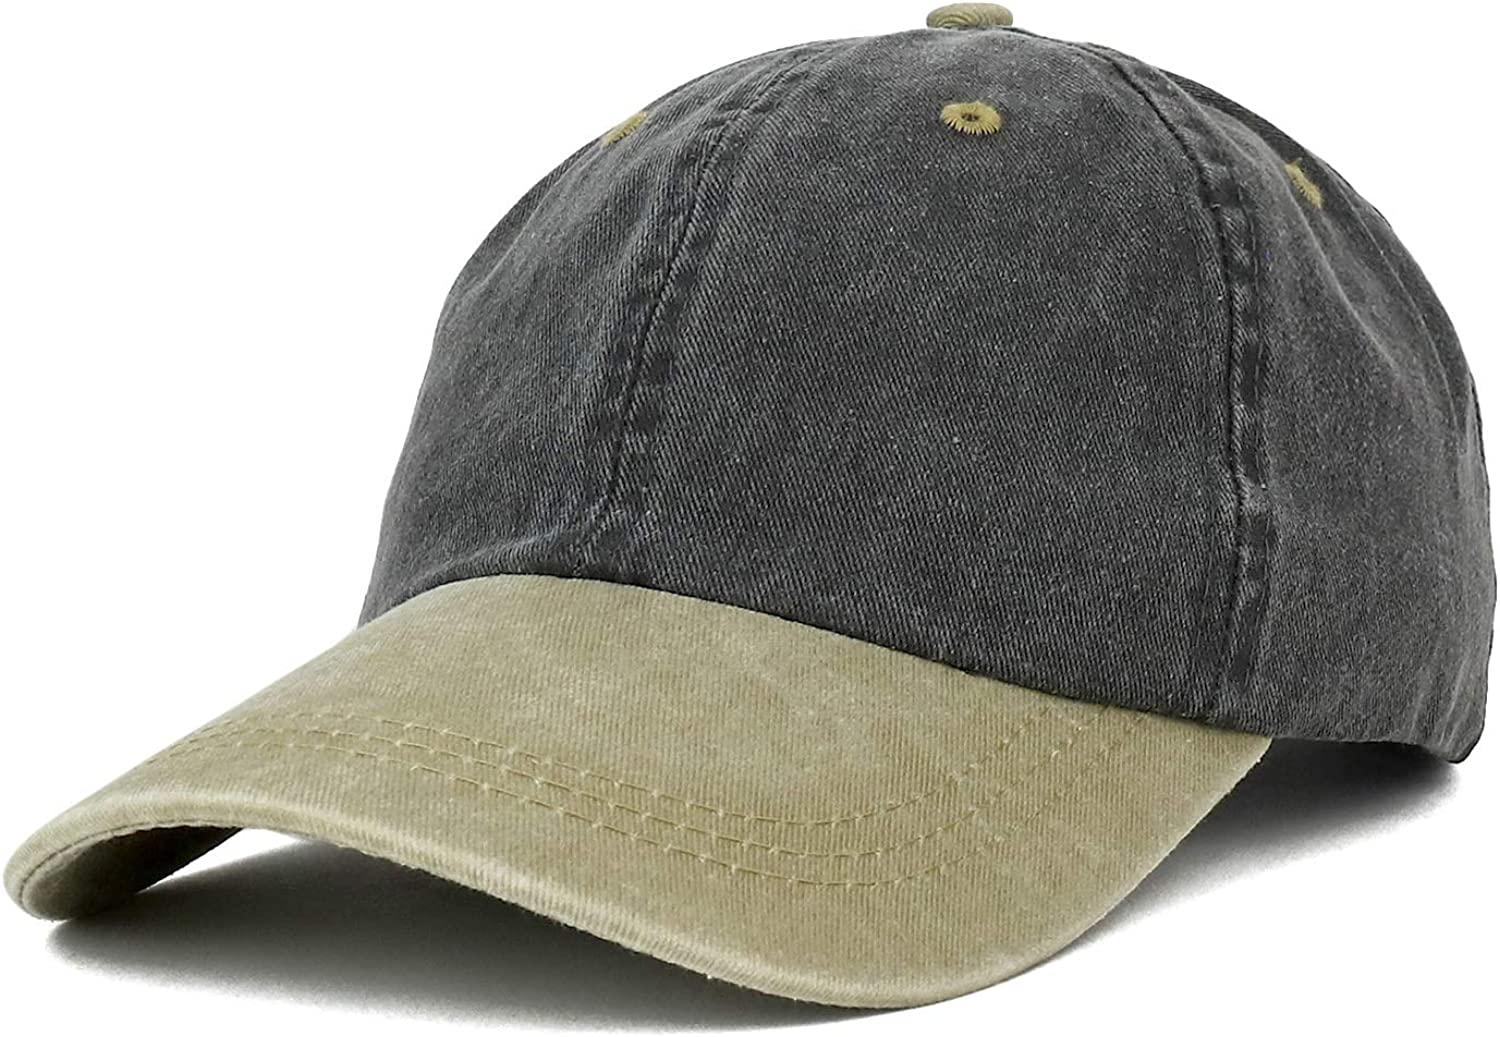 Trendy Apparel Shop Youth Small Fit Bio Washed Unstructured Cotton Baseball Cap